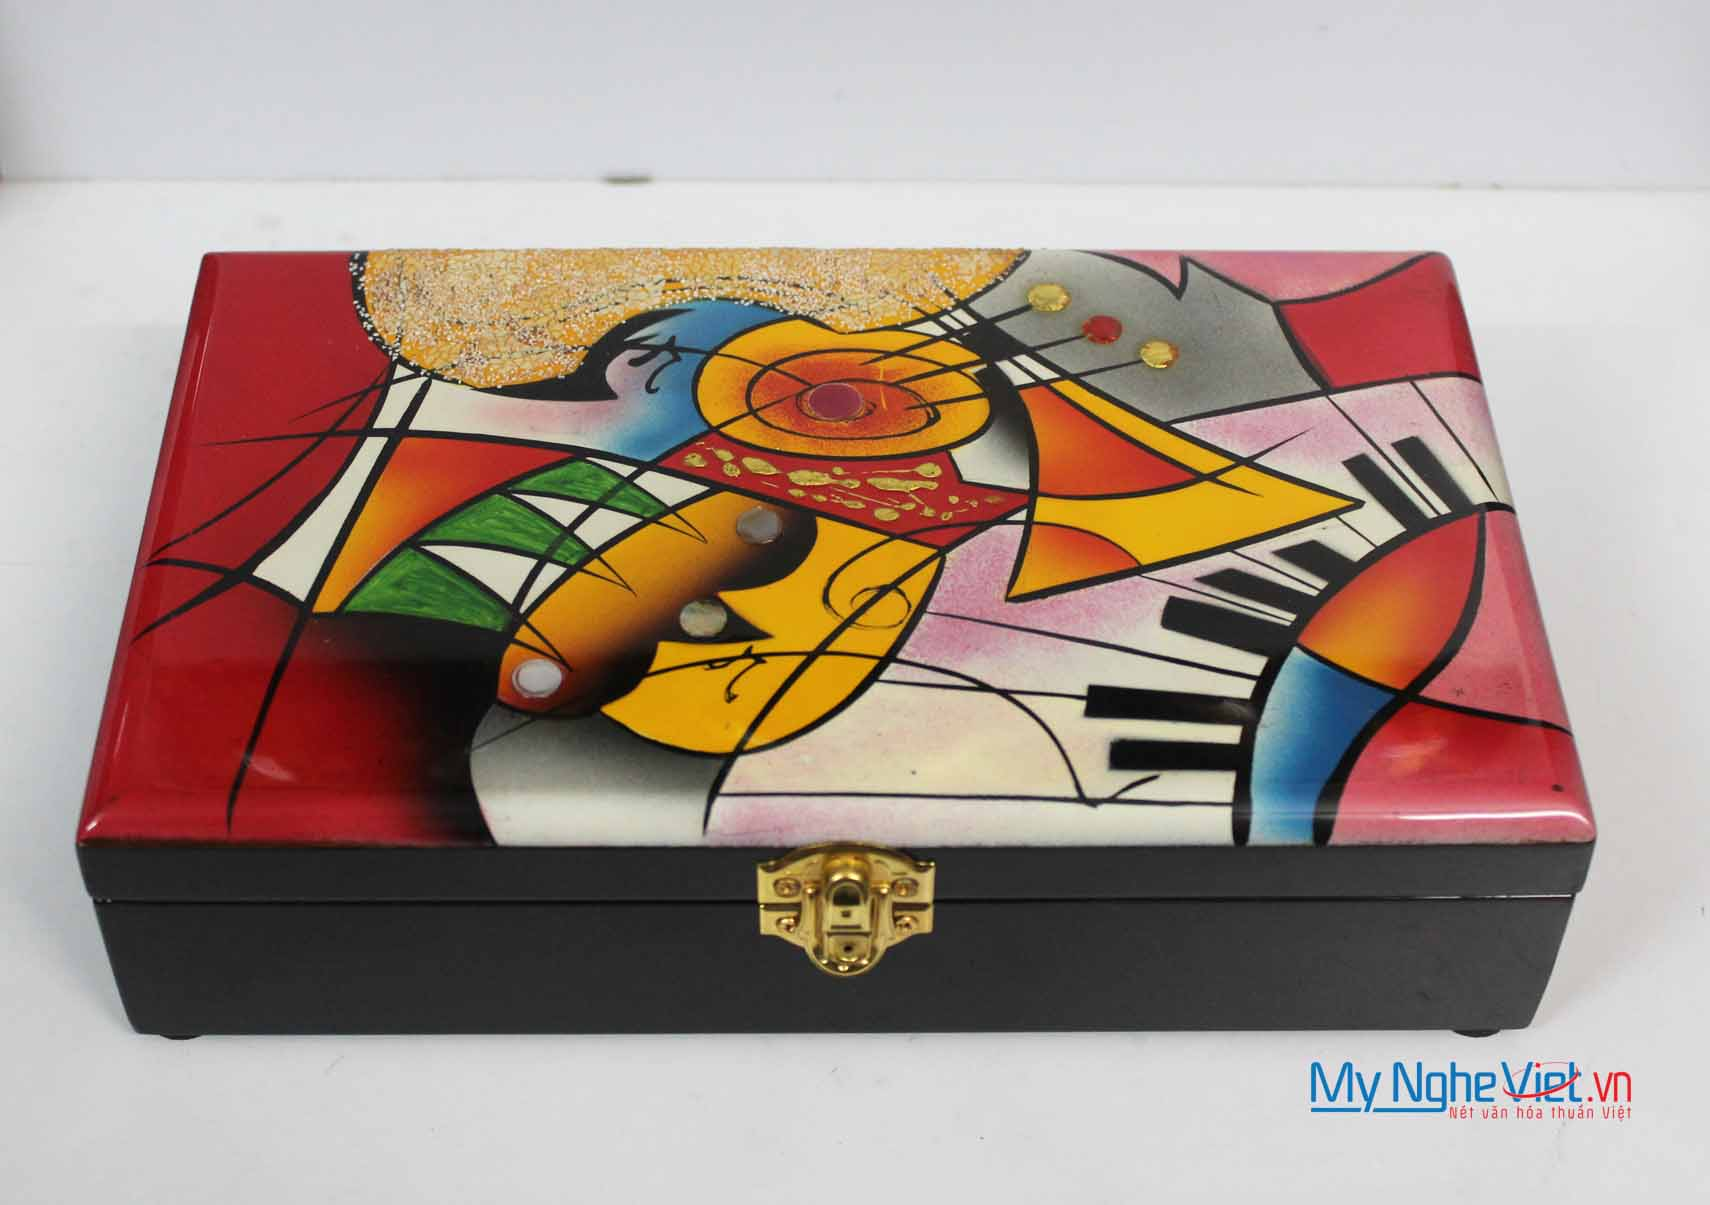 Picasso jewellery box MNV-HTN37